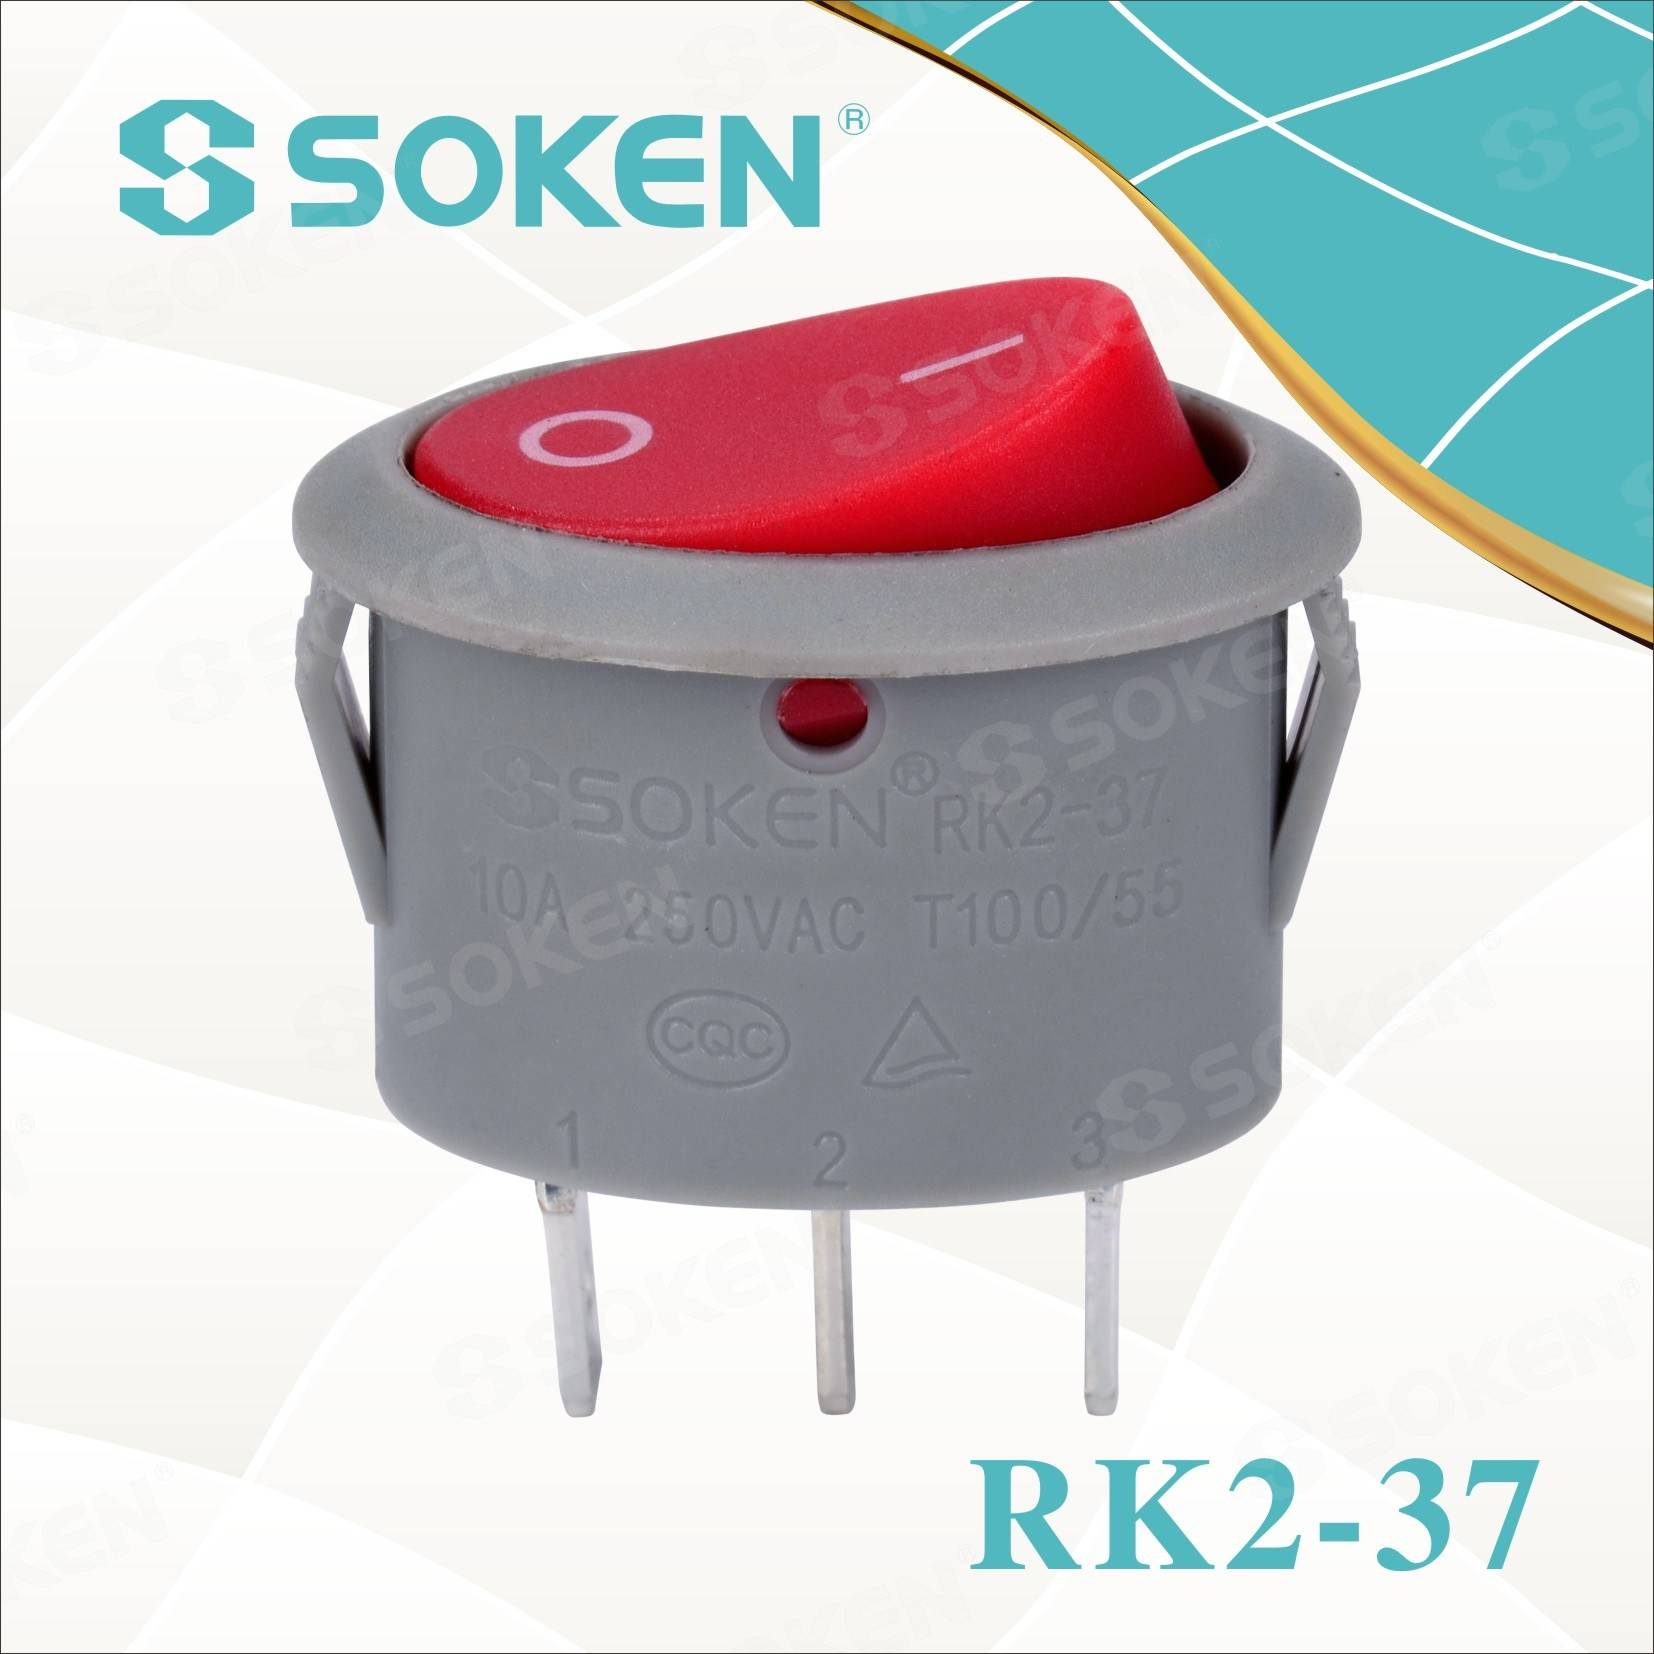 Rk2-37A oval Rocker switjha